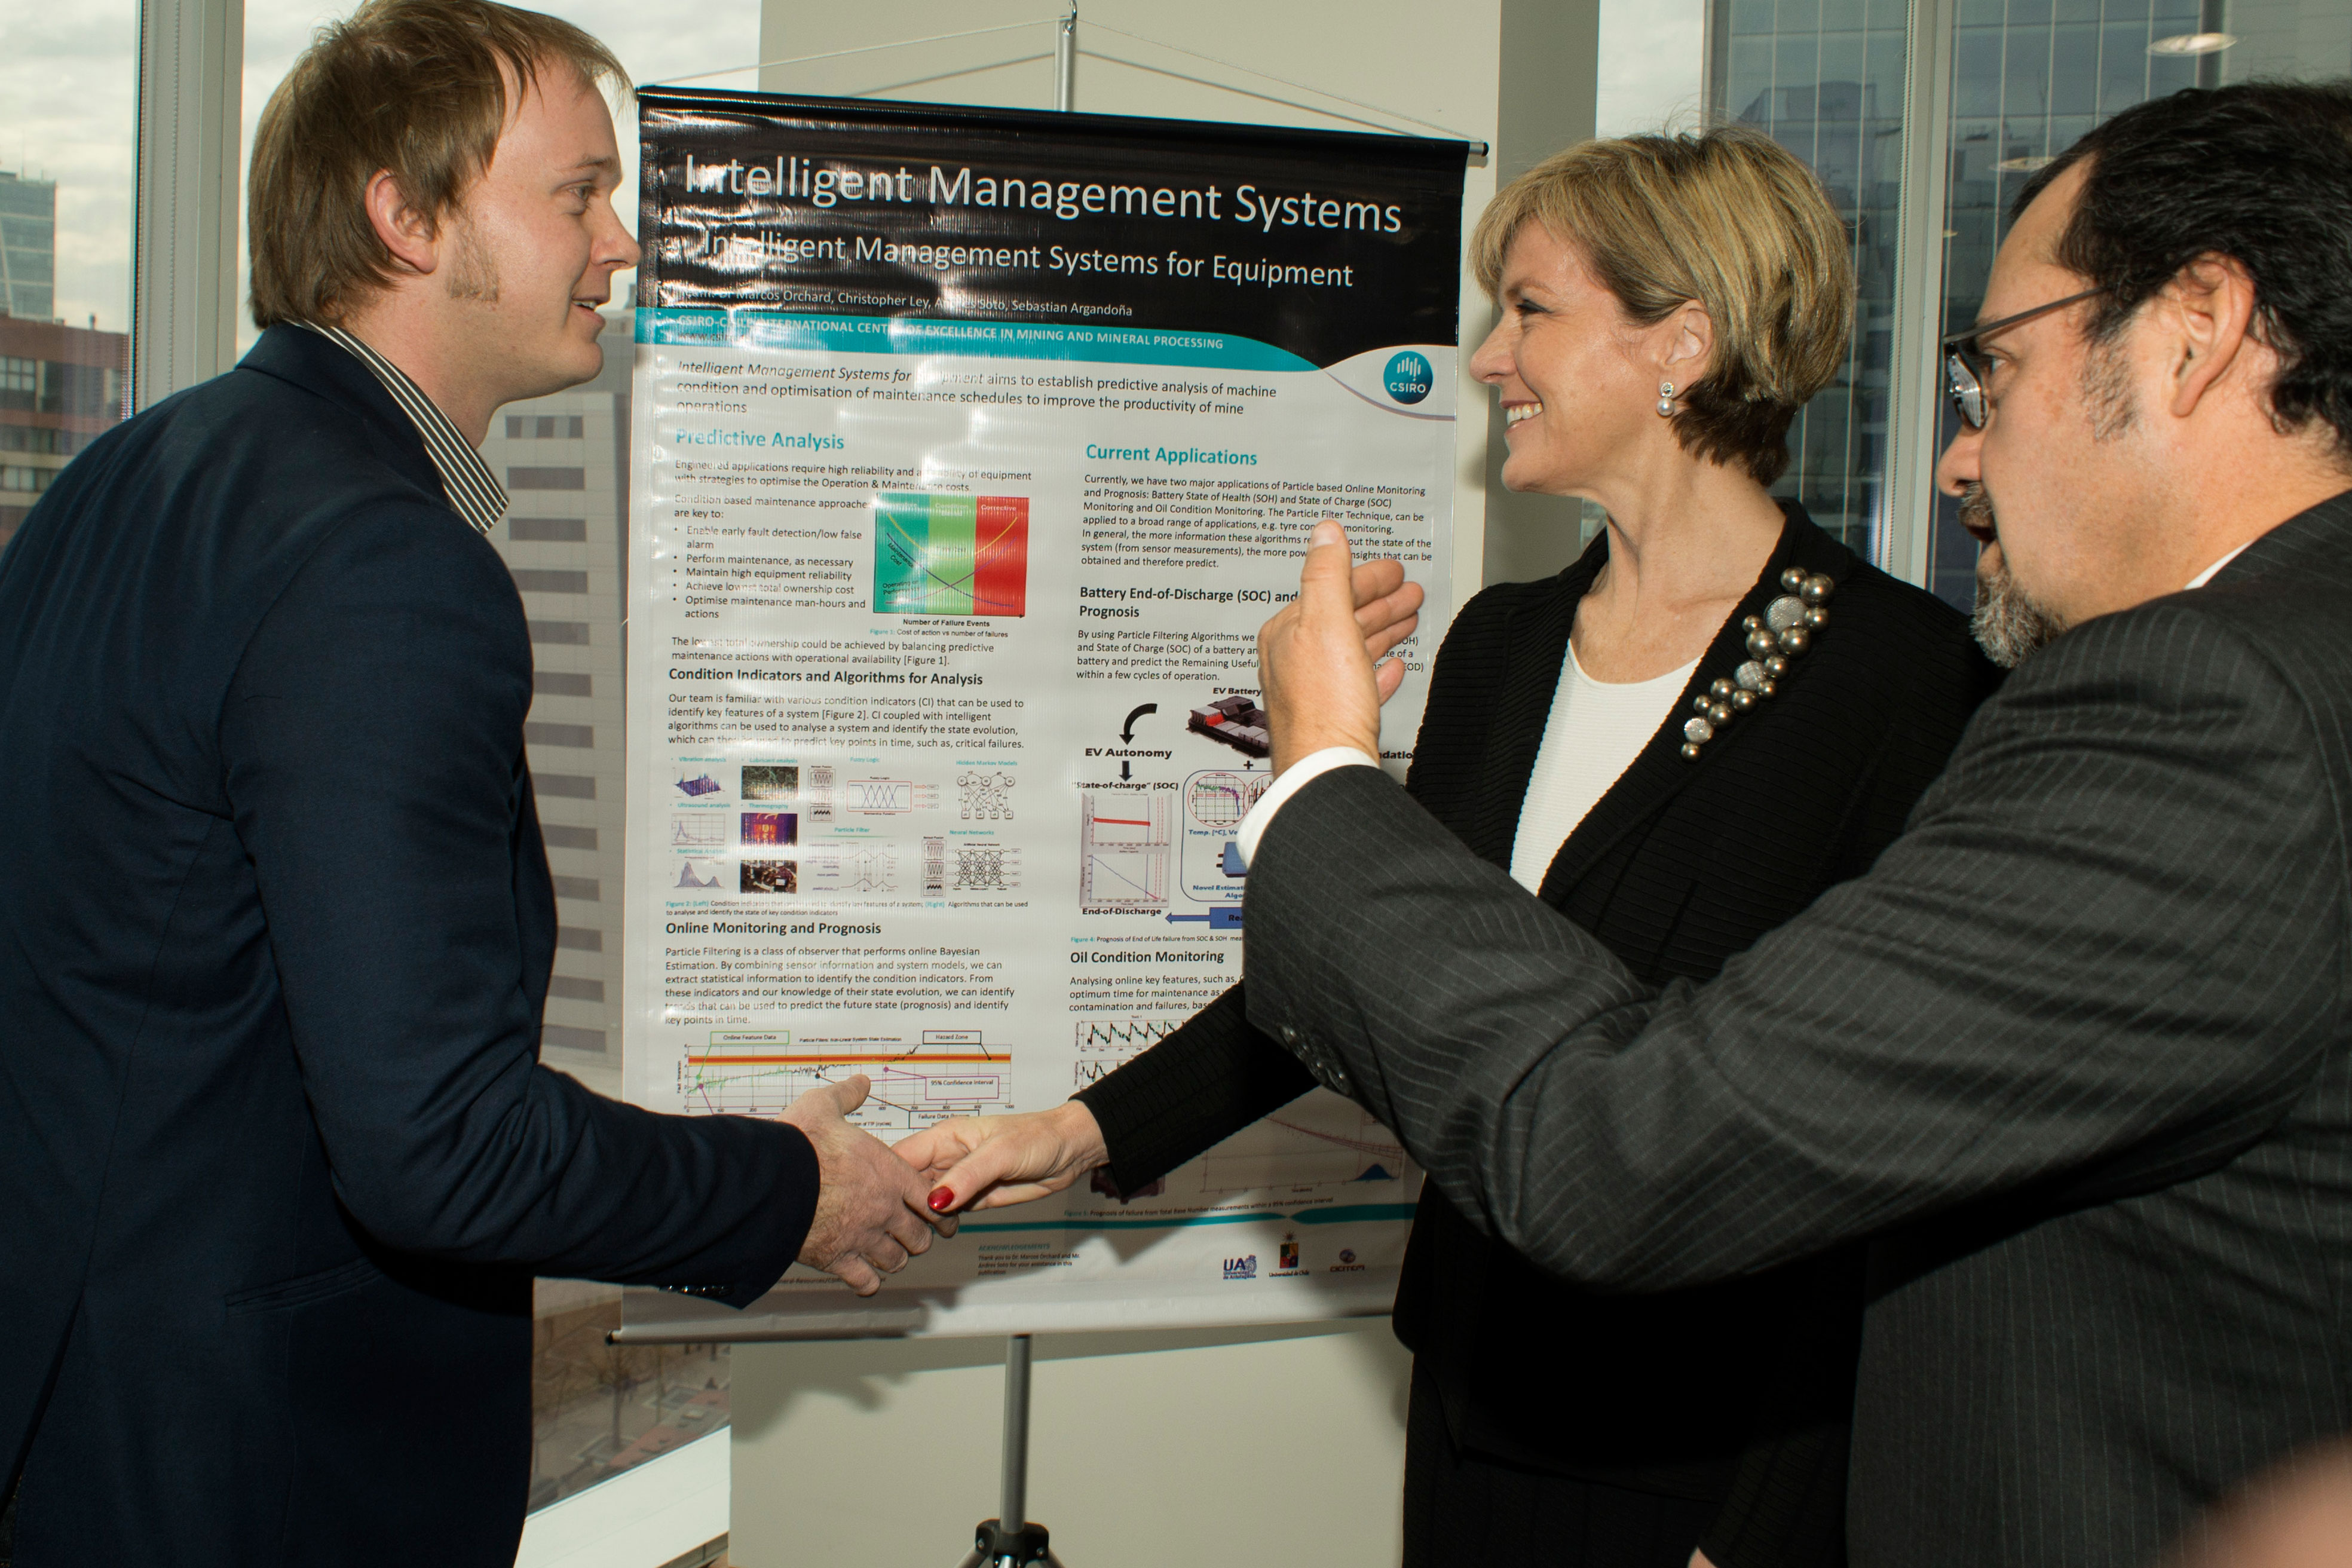 Julie Bishop MP shakes hands with CSIRO researcher Christopher Ley and Executive Director of CSIRO Chile, Dr Orlando Jiménez.